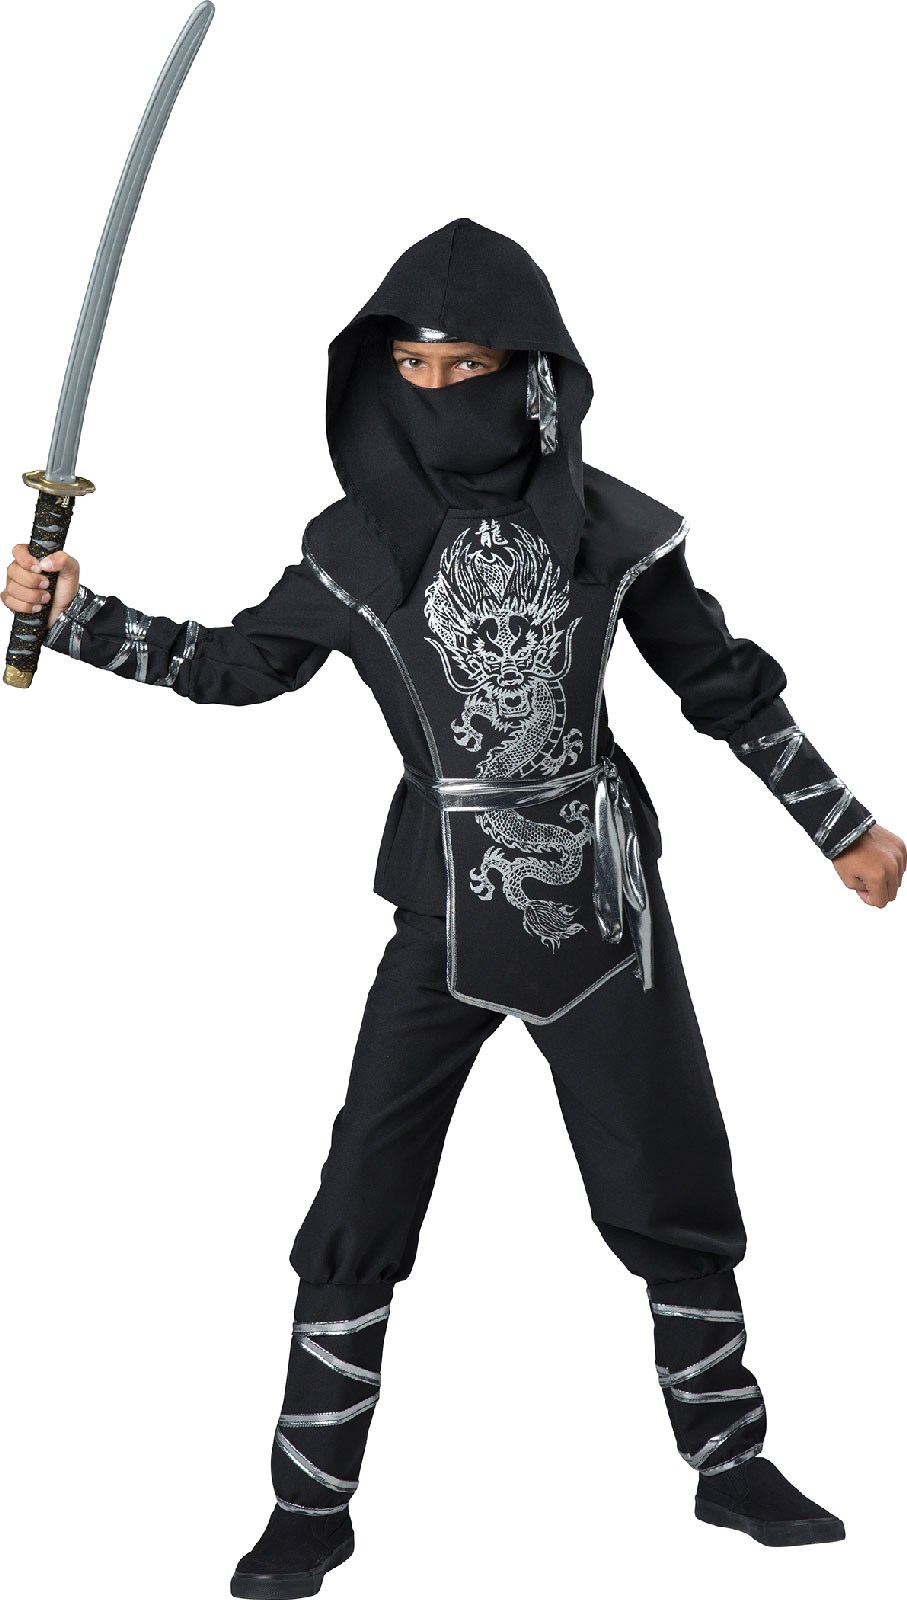 ninja halloween costumes for kids and adults. Black Bedroom Furniture Sets. Home Design Ideas